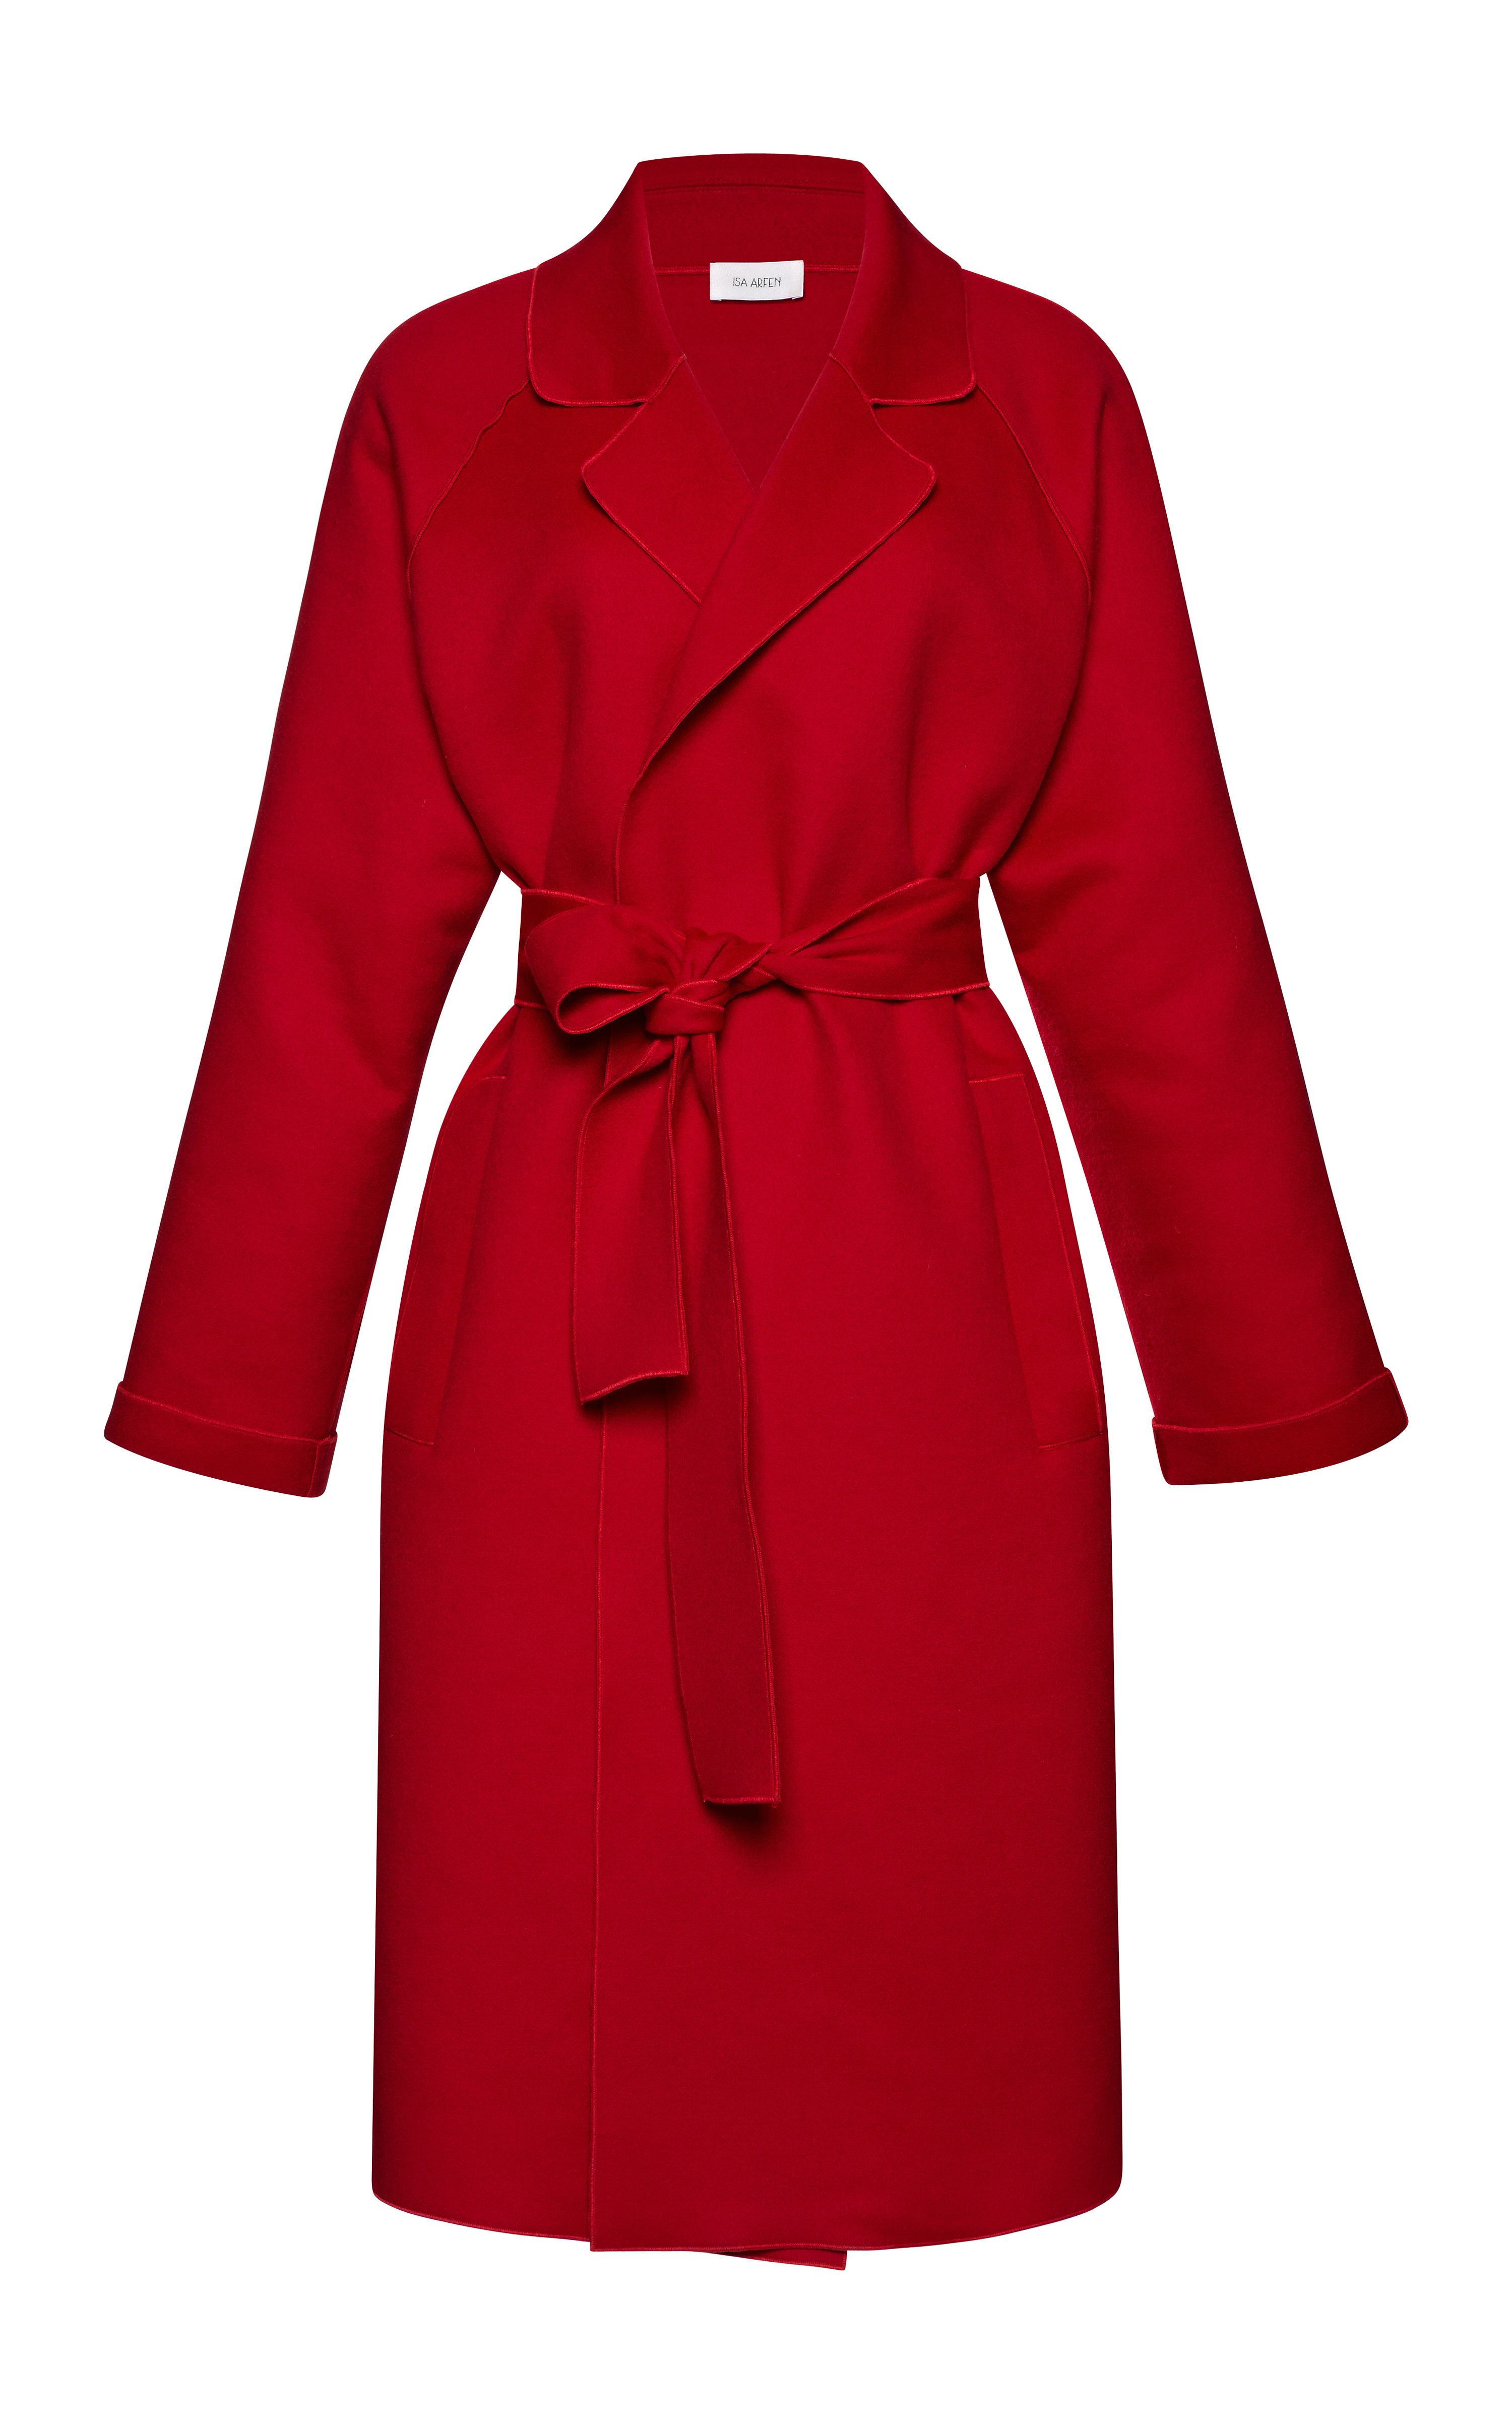 Isa arfen Belted Wool And Cashmere-Blend Coat in Red | Lyst